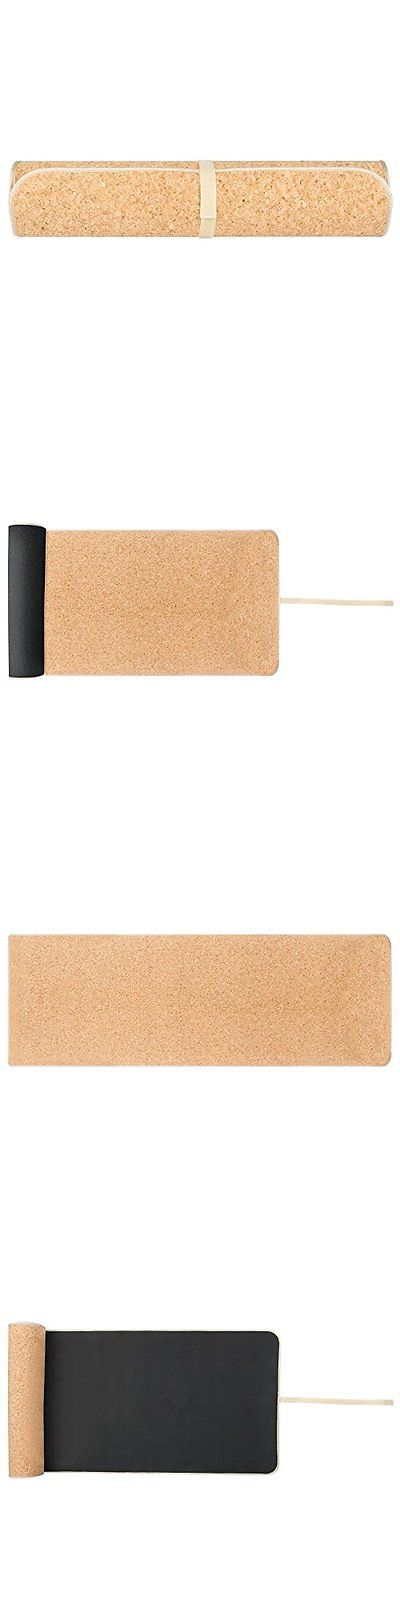 Yoga Props 179809: Cork Yoga Mat BUY IT NOW ONLY: $48.76